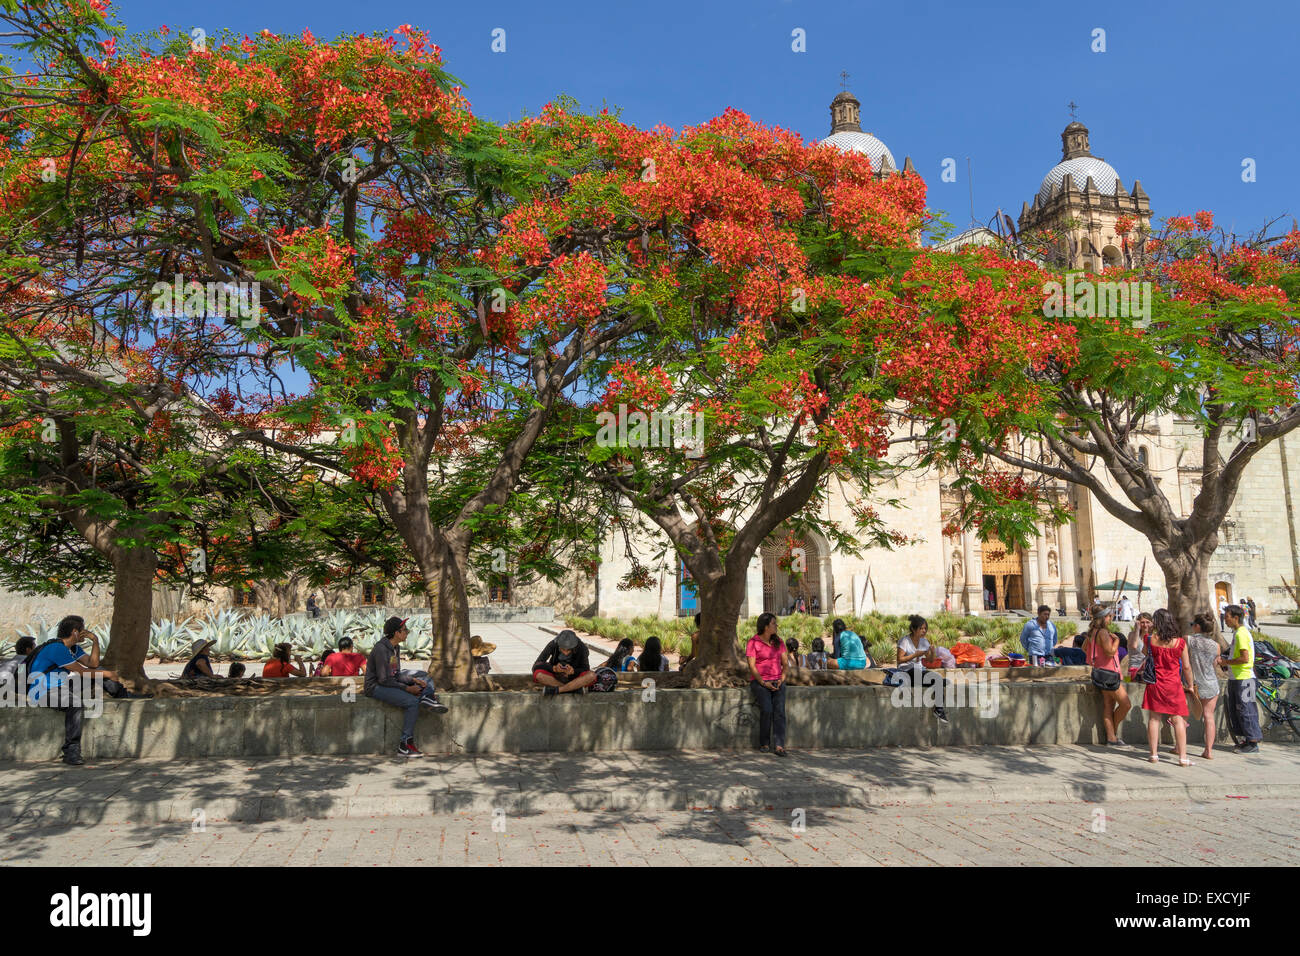 People relaxing in the shade of the trees in front of the Santo Domingo Church in Oaxaca Mexico - Stock Image